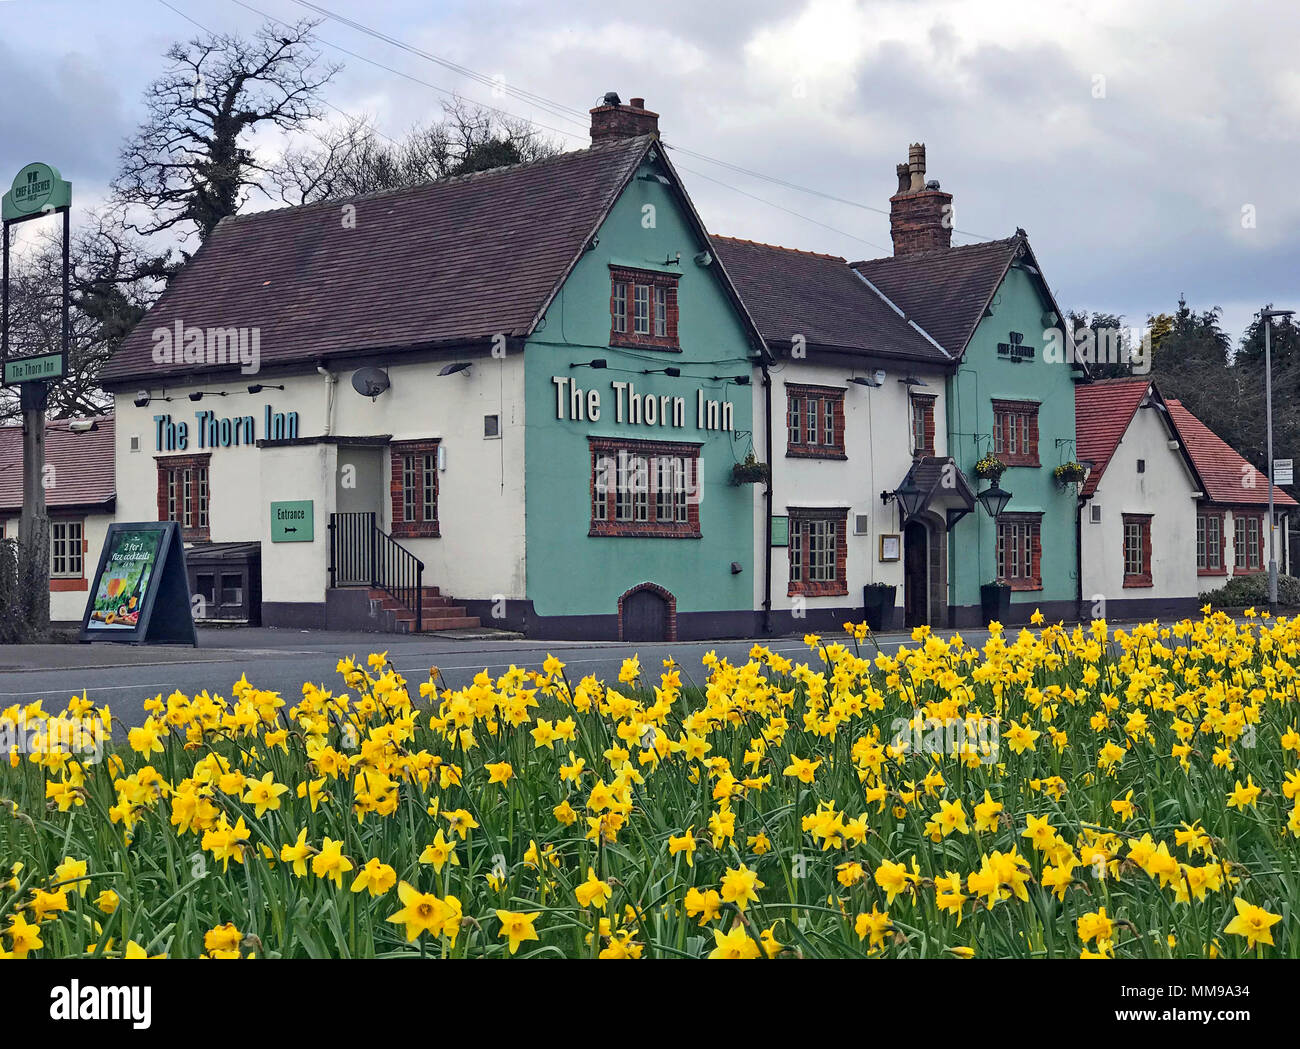 The Thorn Inn, Appleton Thorn, Warrington, Cheshire, England, UK with daffodils in spring - Stock Image